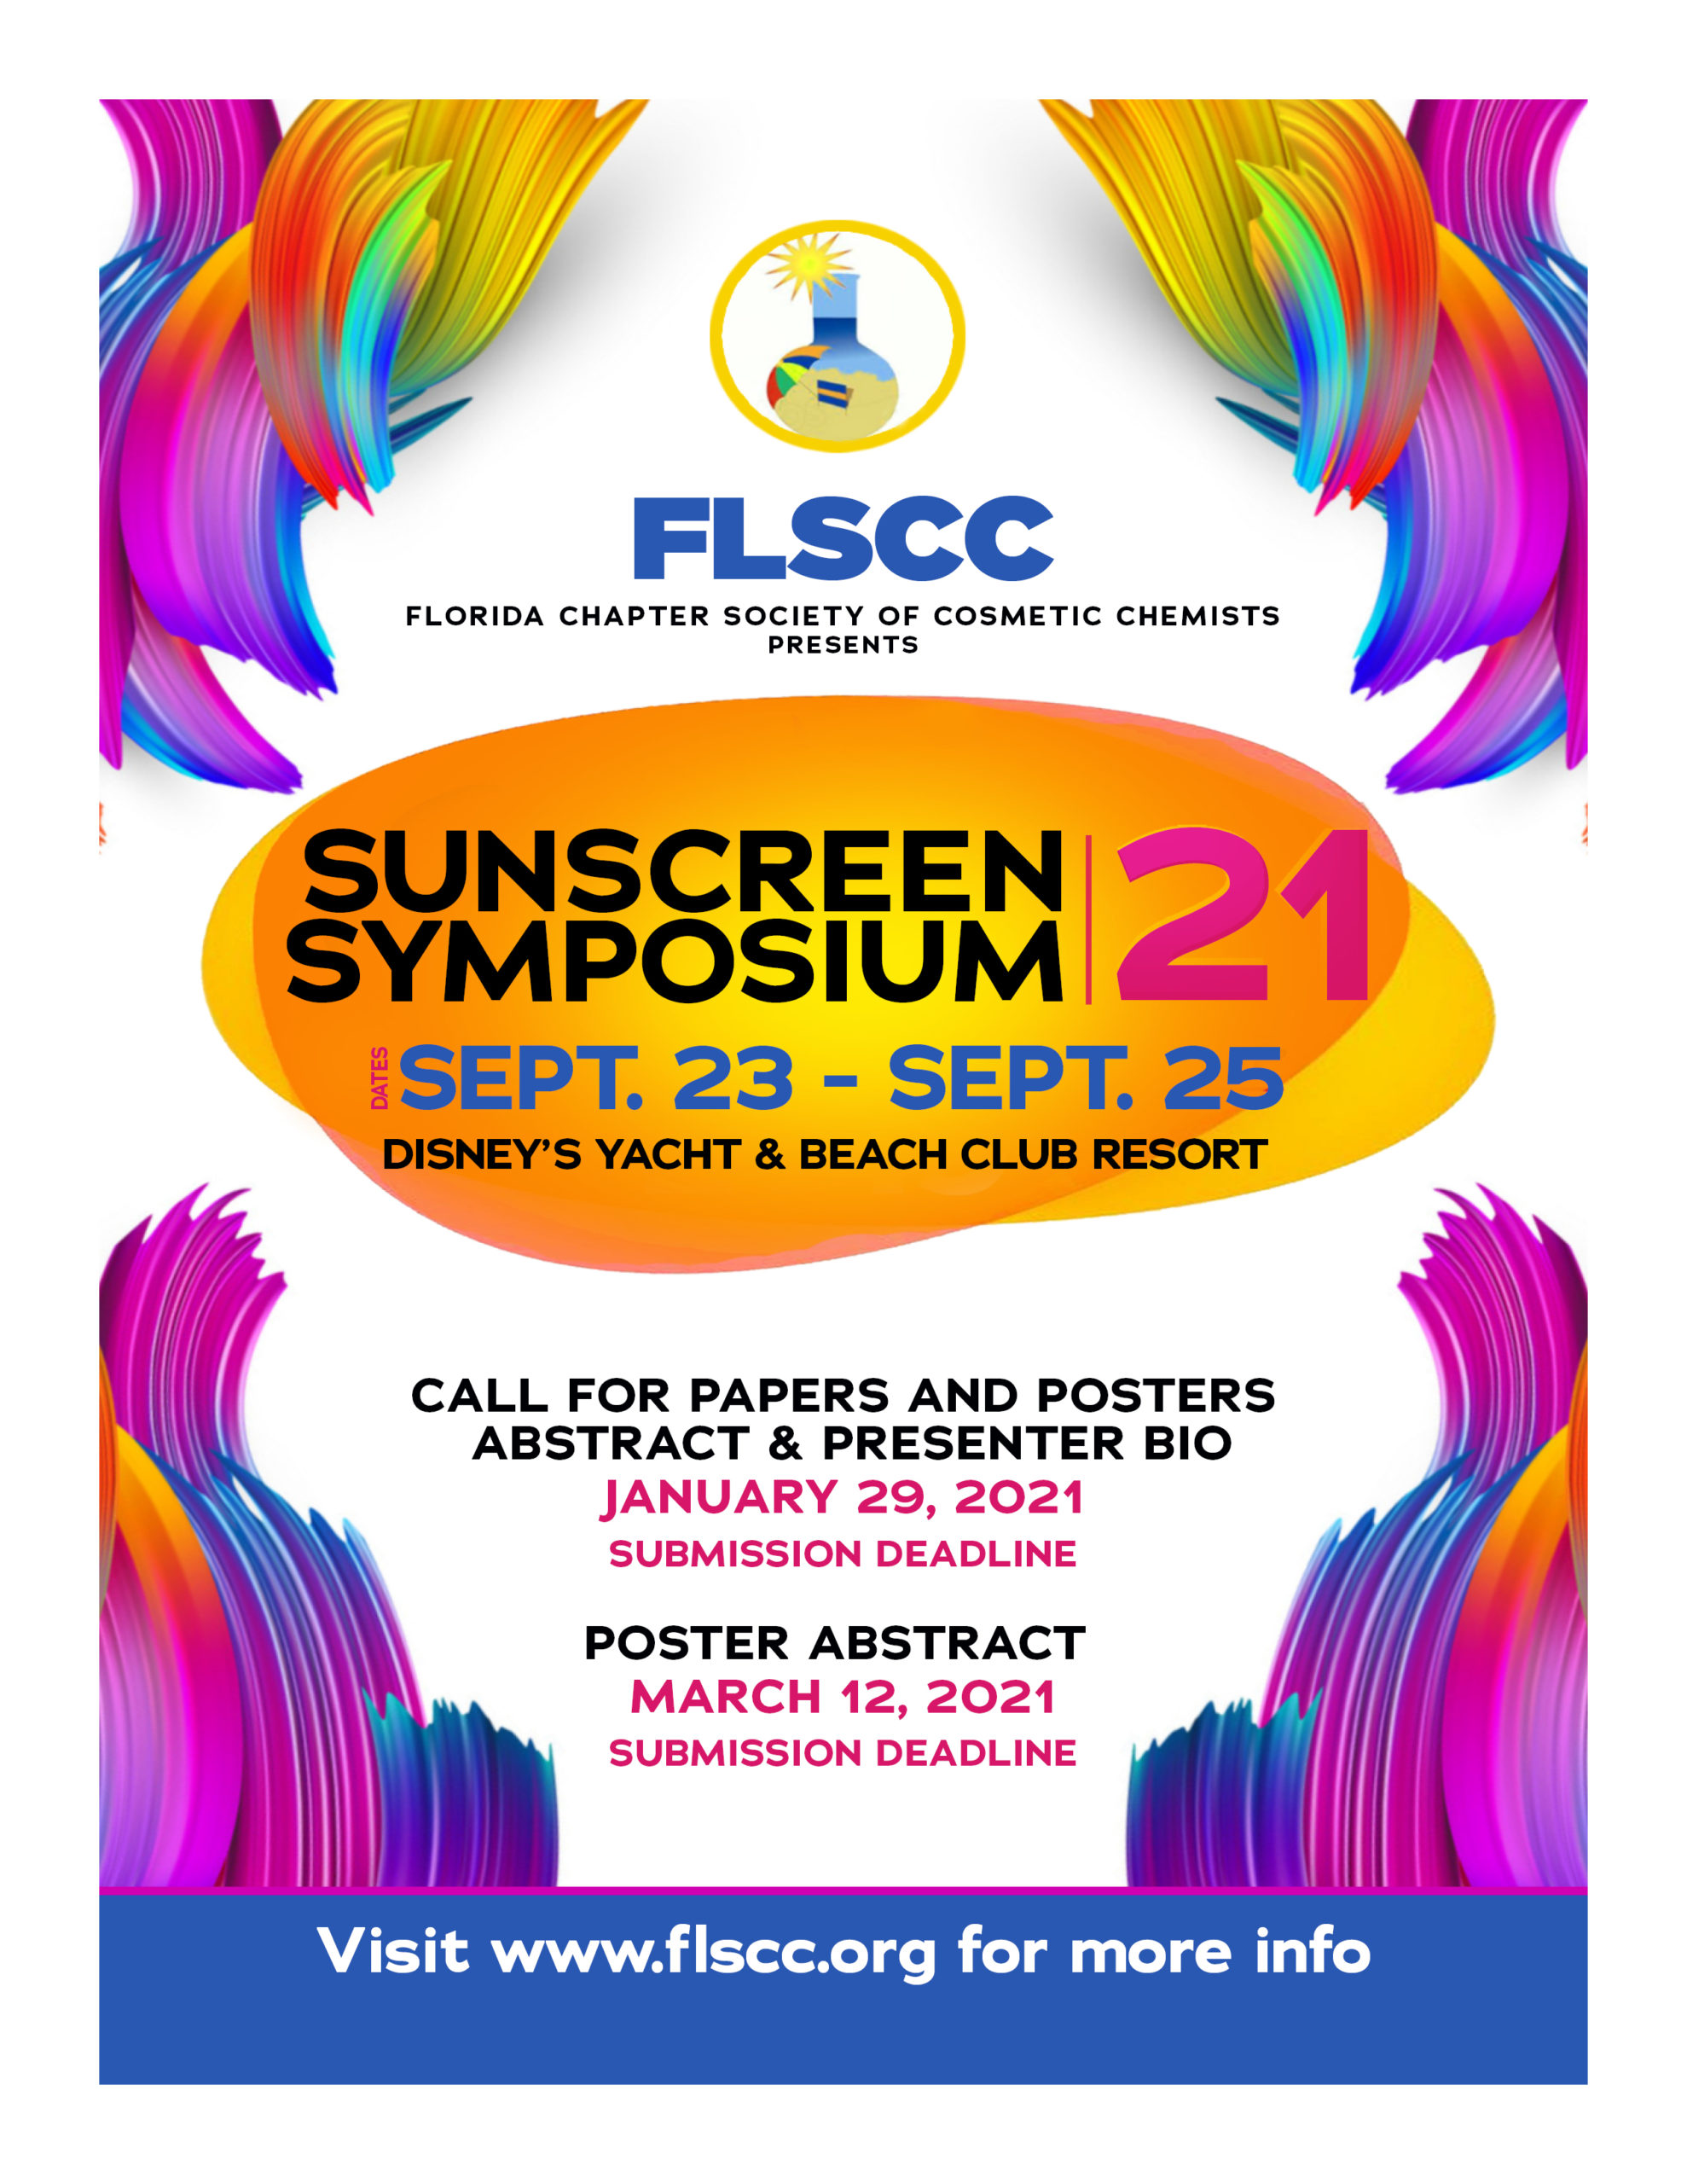 Sunscreen Symposium 2021 Flyer